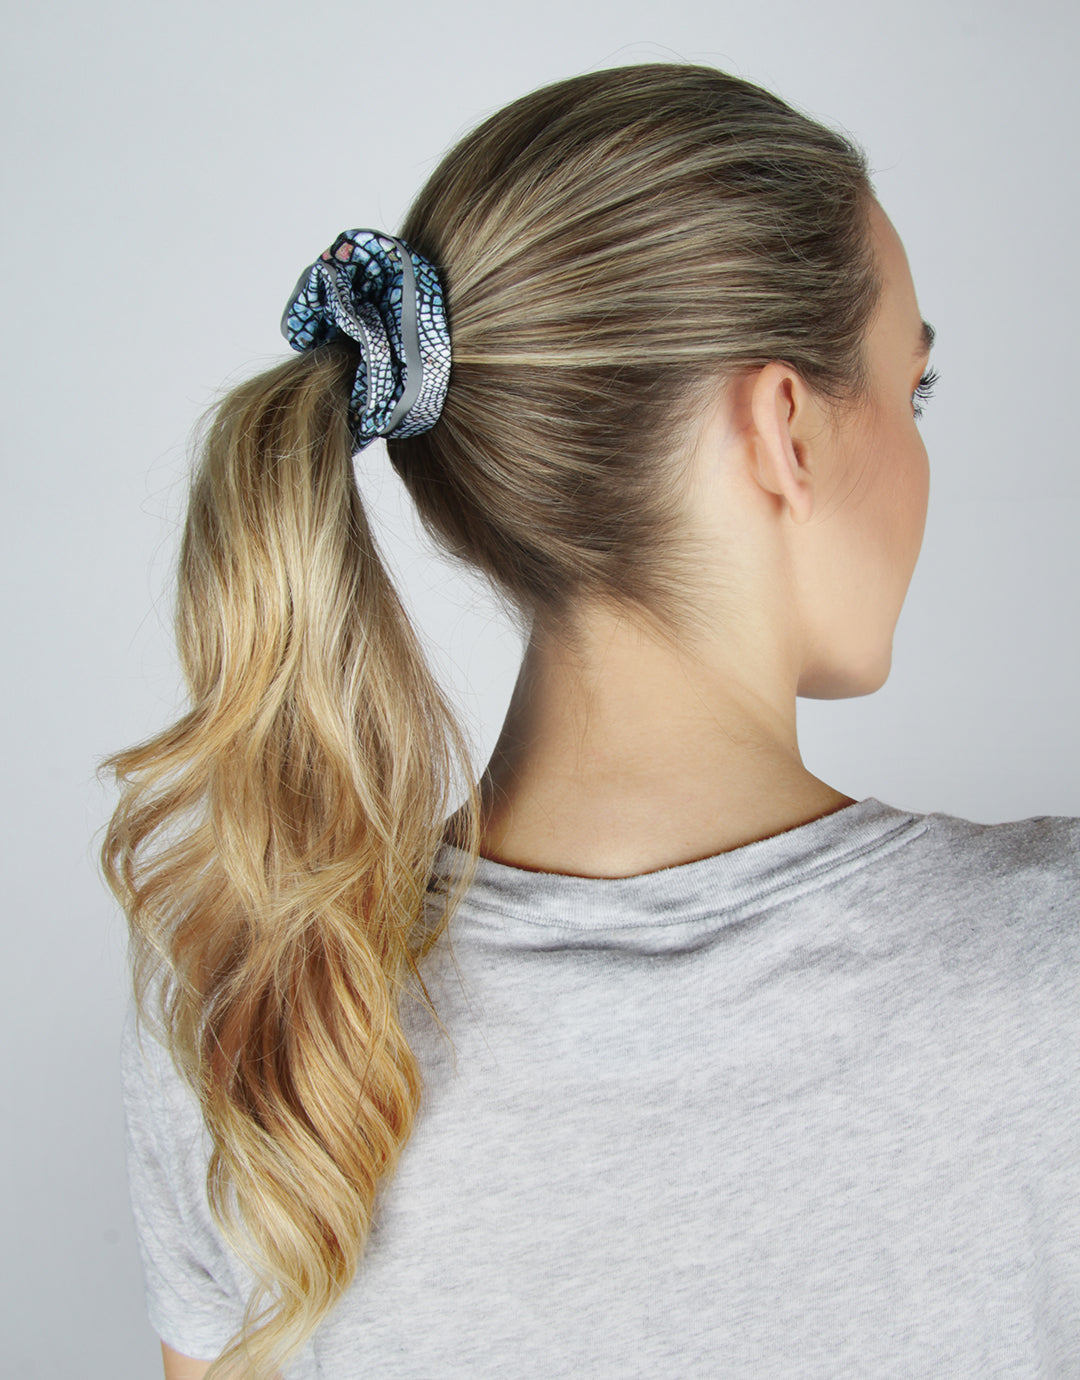 Blue Cobblestone - 2 Pack Reflective Athletic Scrunchies